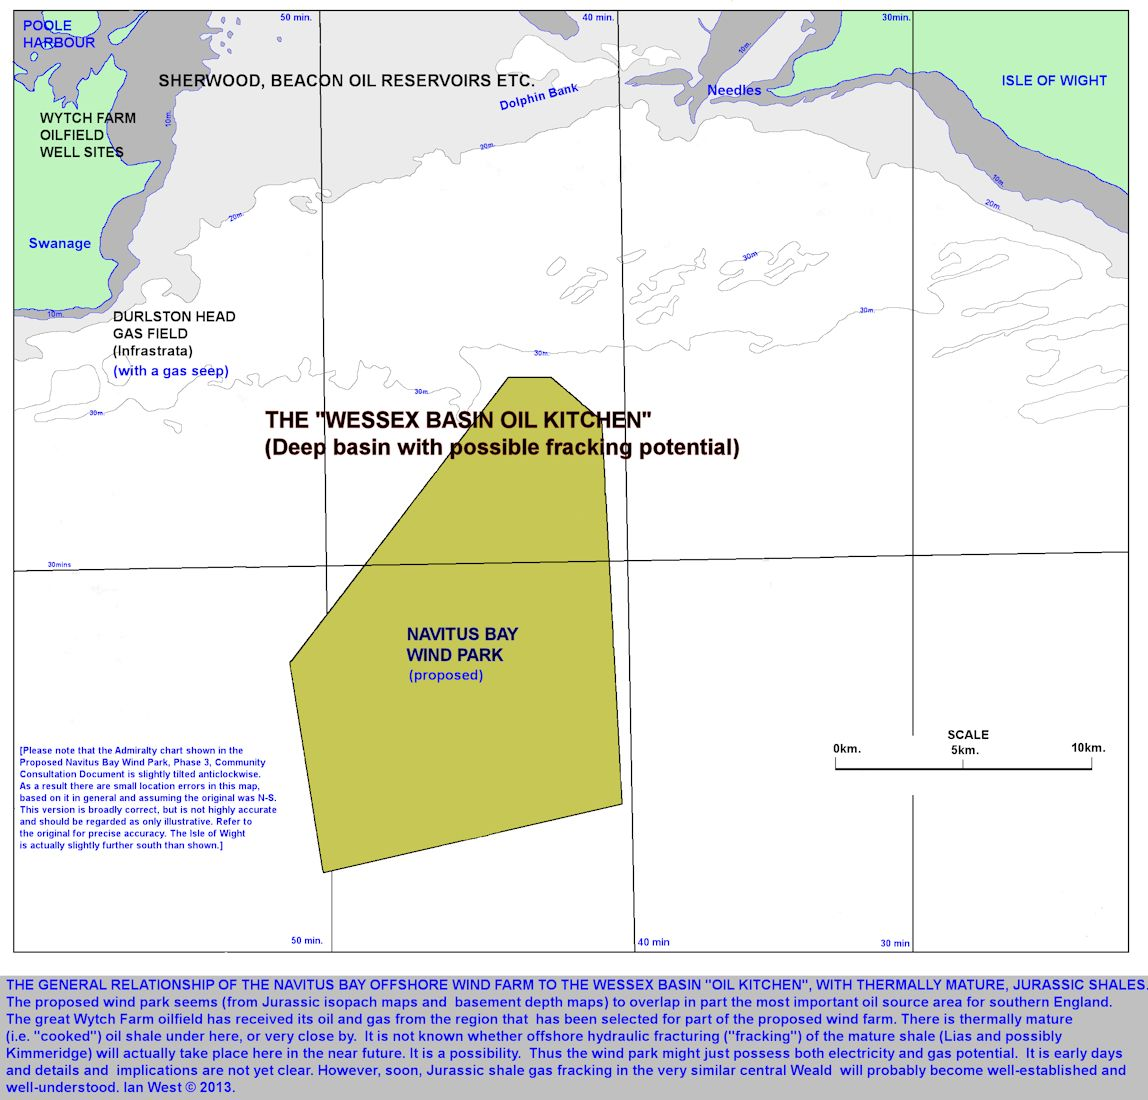 The Navitus Bay Wind Park in relation to the Wessex Basin Oil Kitchen and thermal maturity of Jurassic shales, with fracking potential